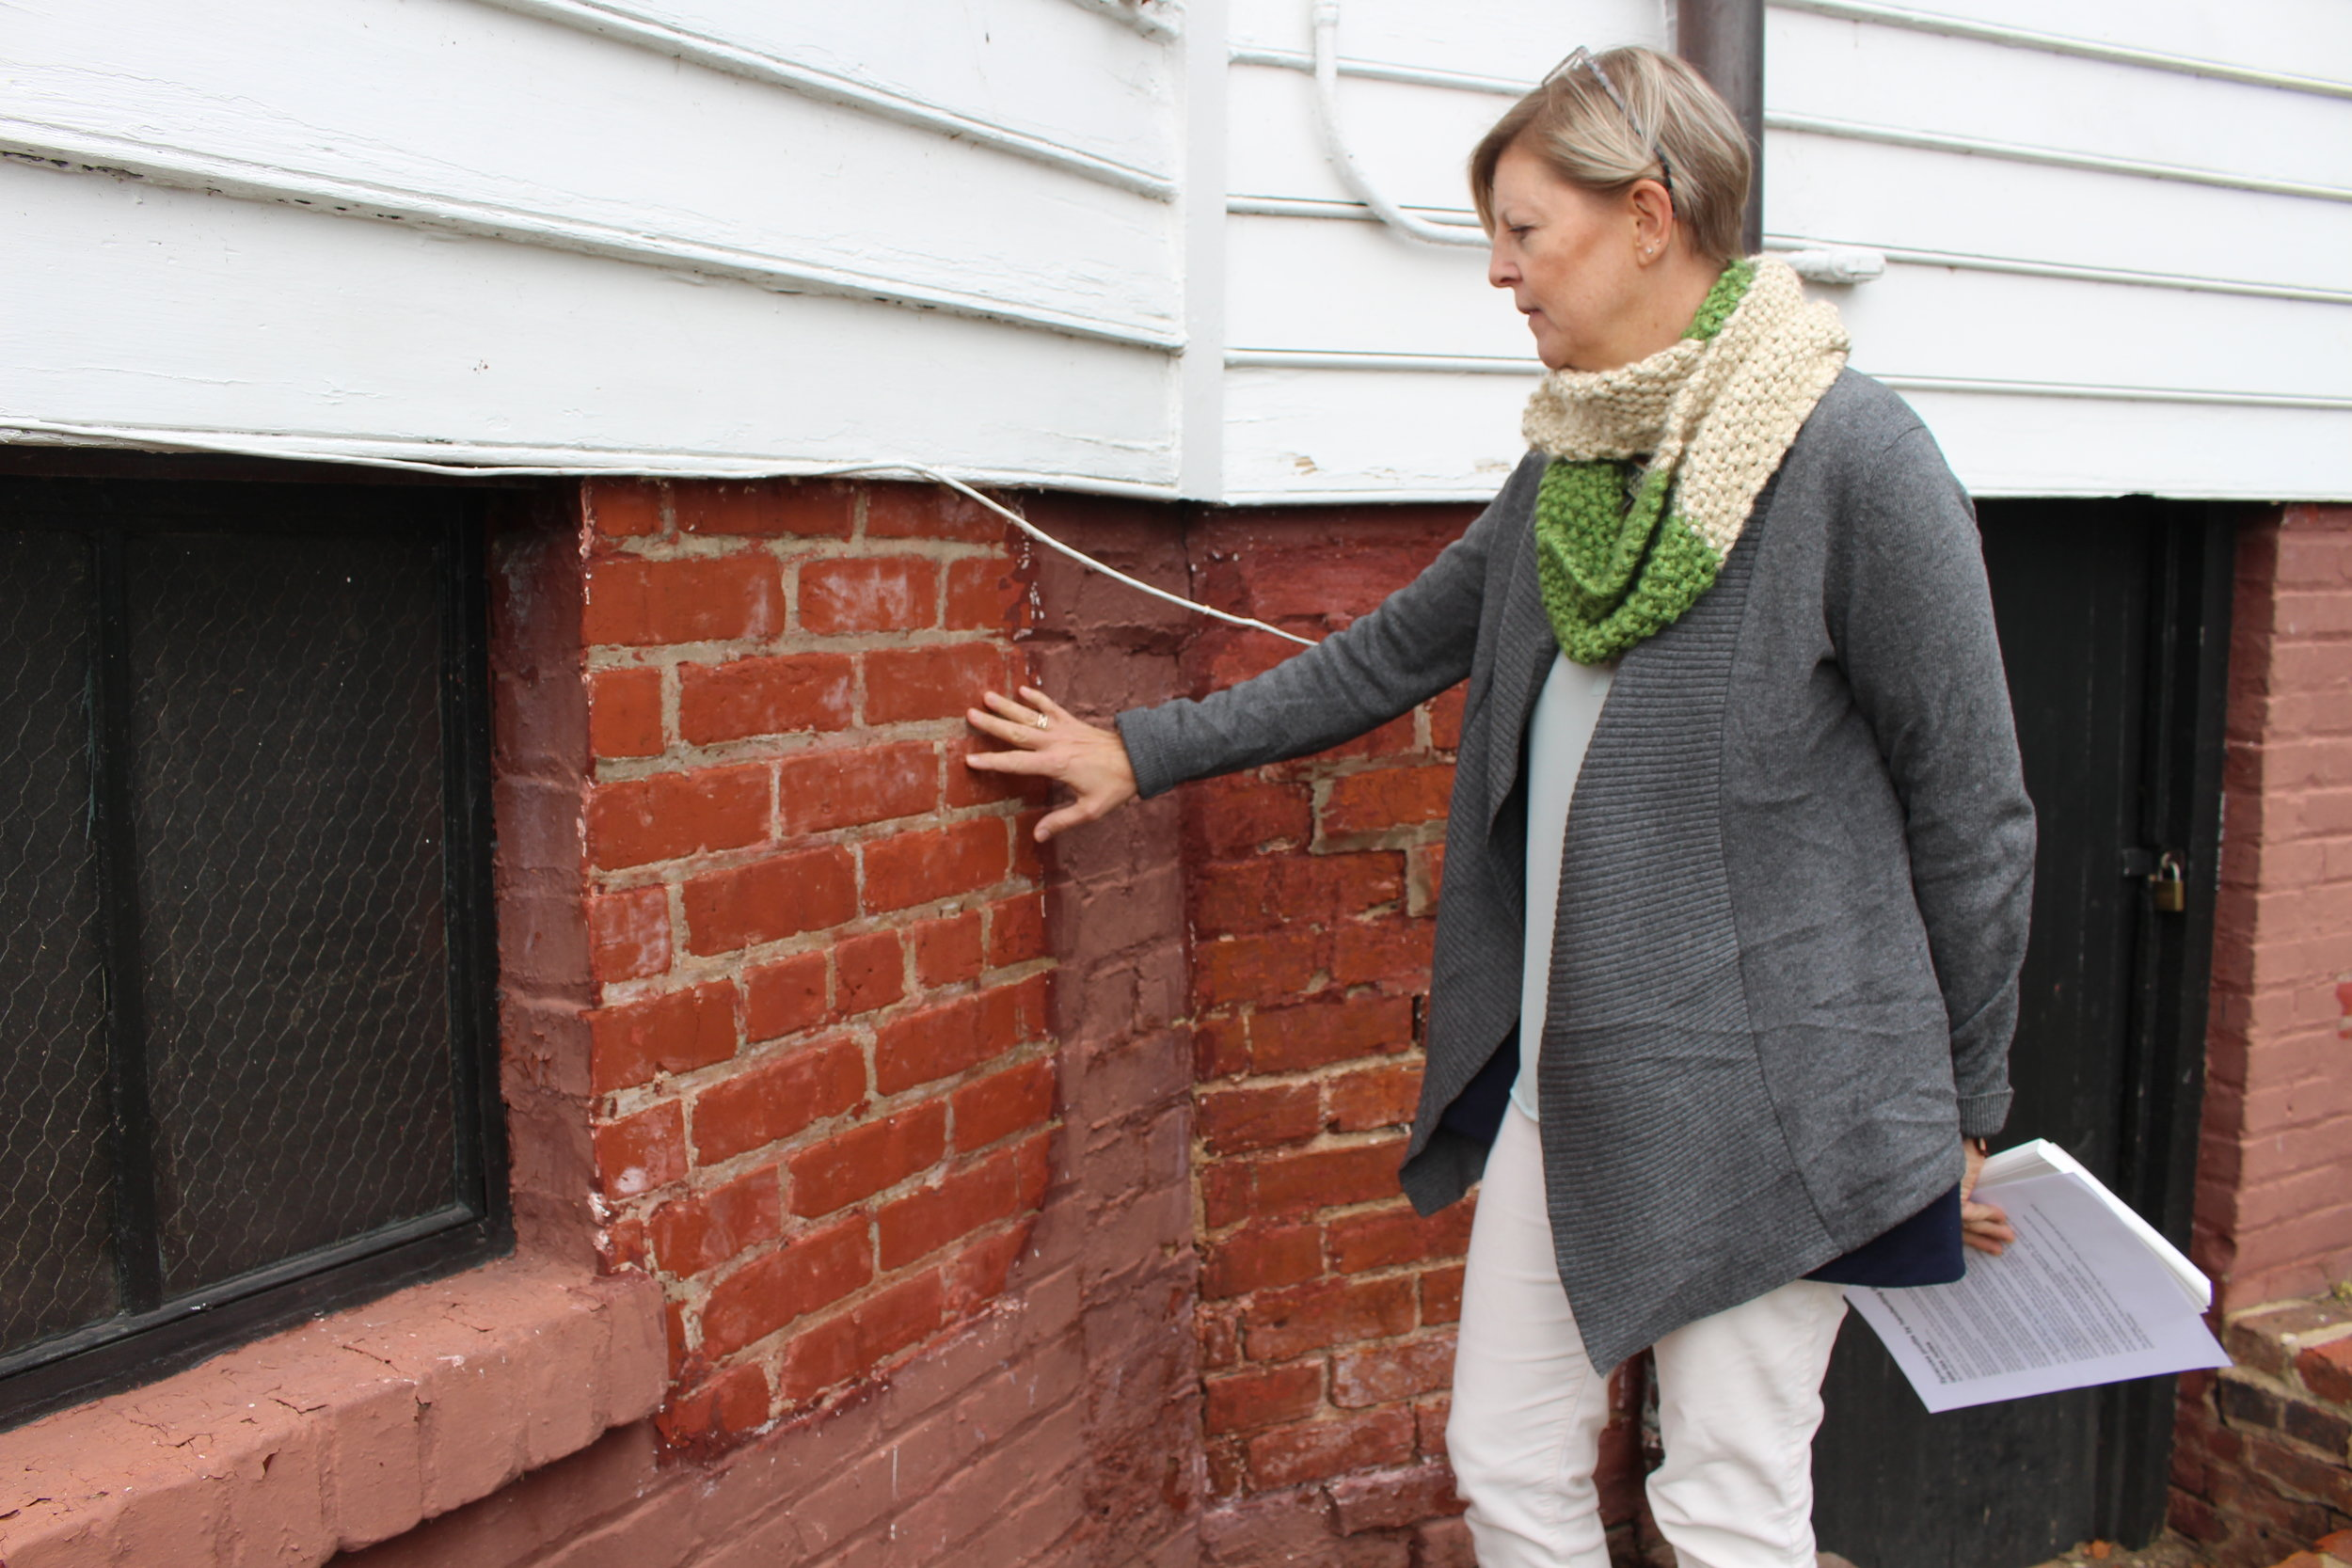 Preservation Director Amy Swartz indicates a test patch on the foundation.